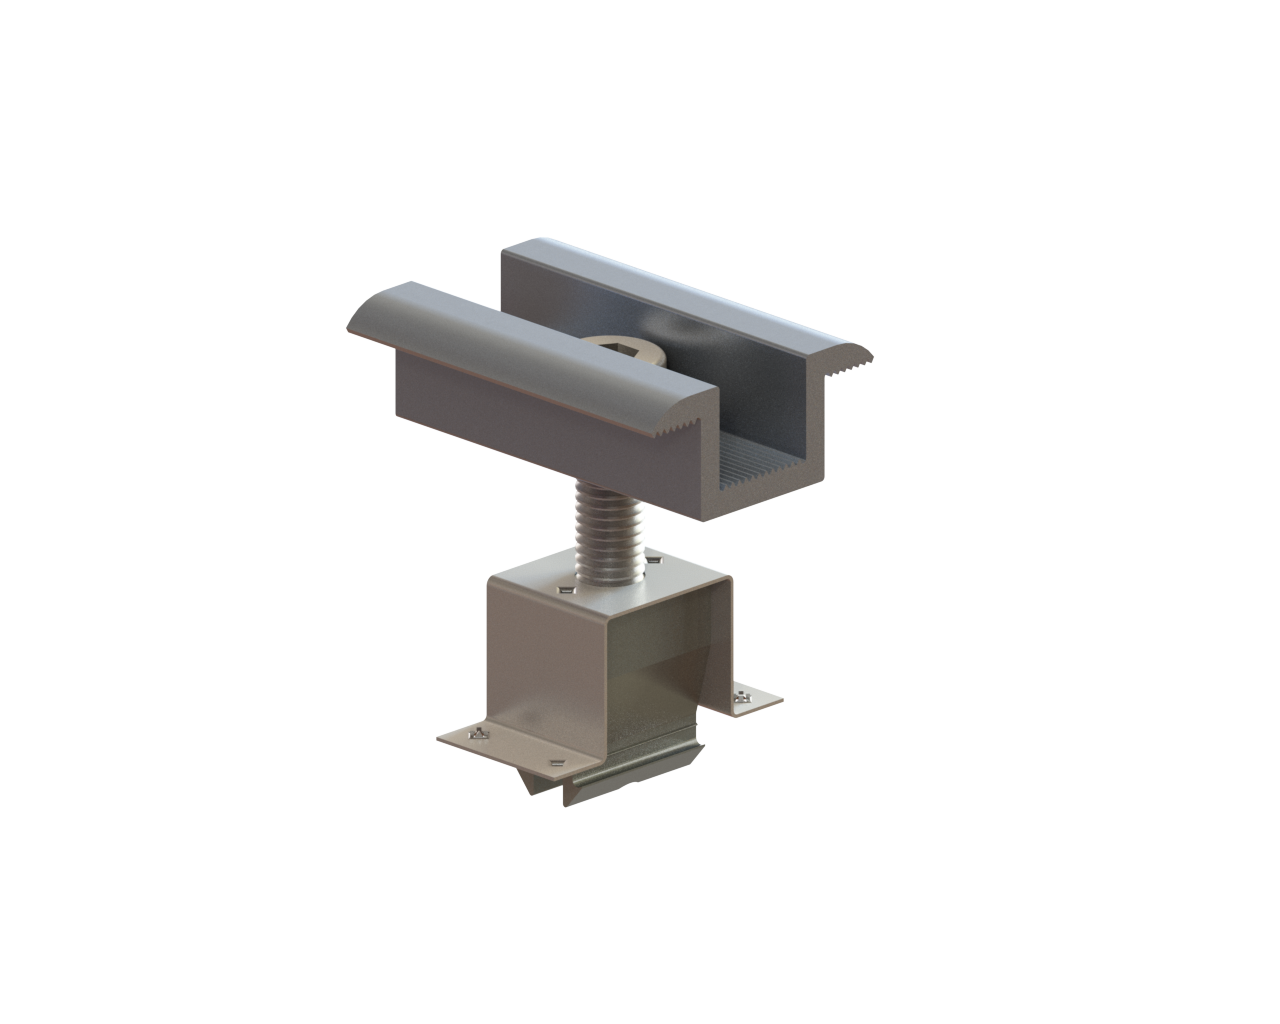 Mounting clip clamp. New mid and end